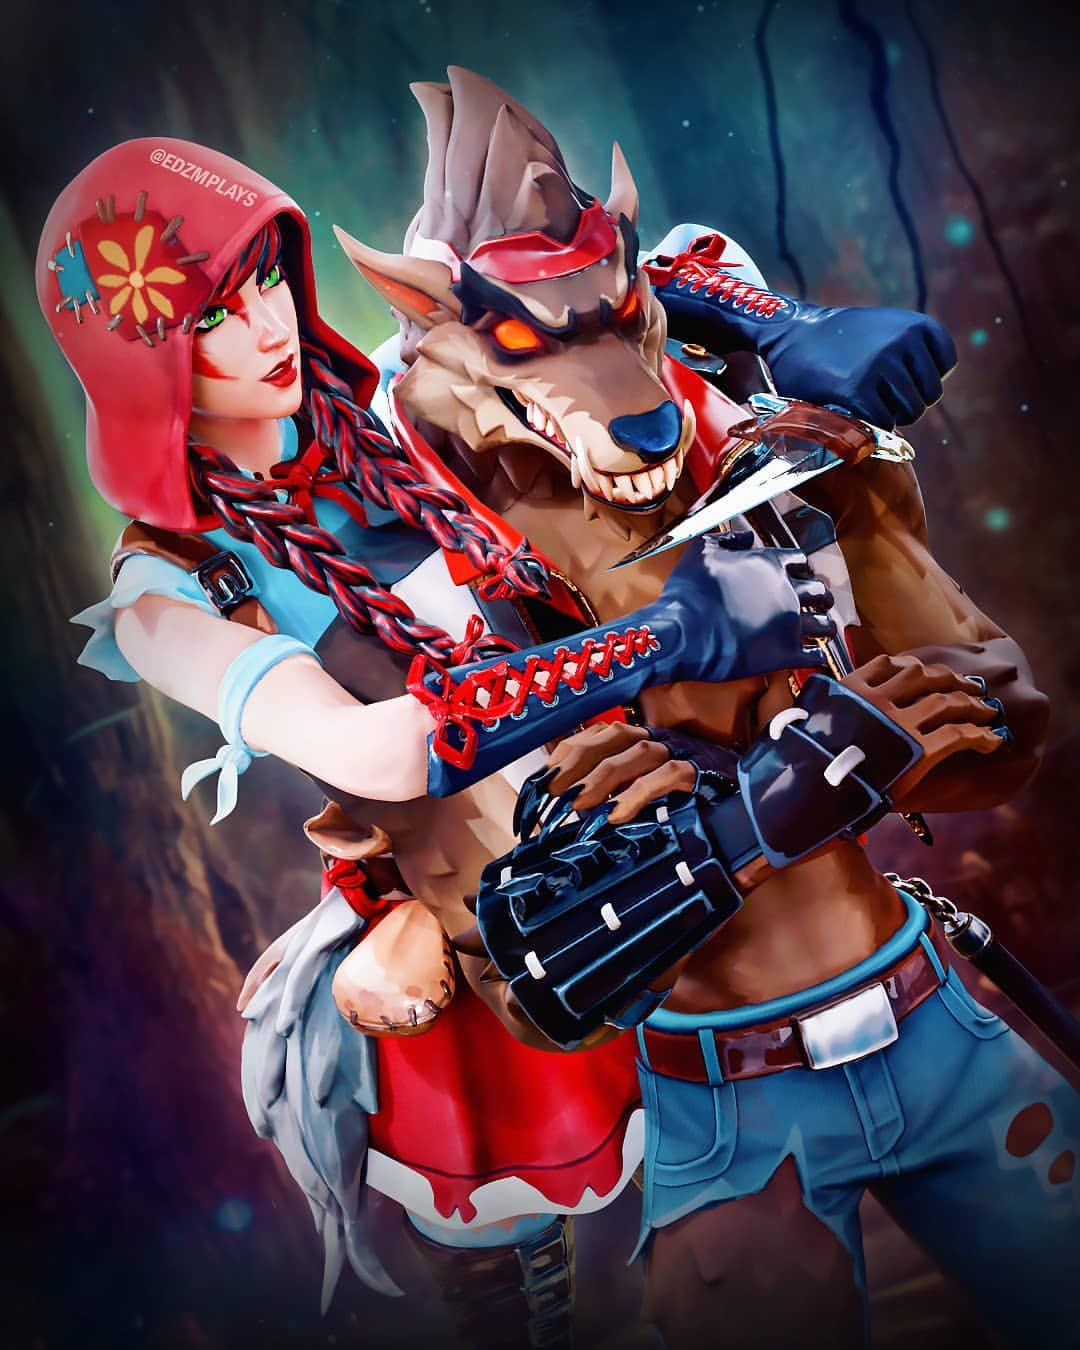 Dire And Fable Best Gaming Wallpapers Gaming Wallpapers Game Wallpaper Iphone